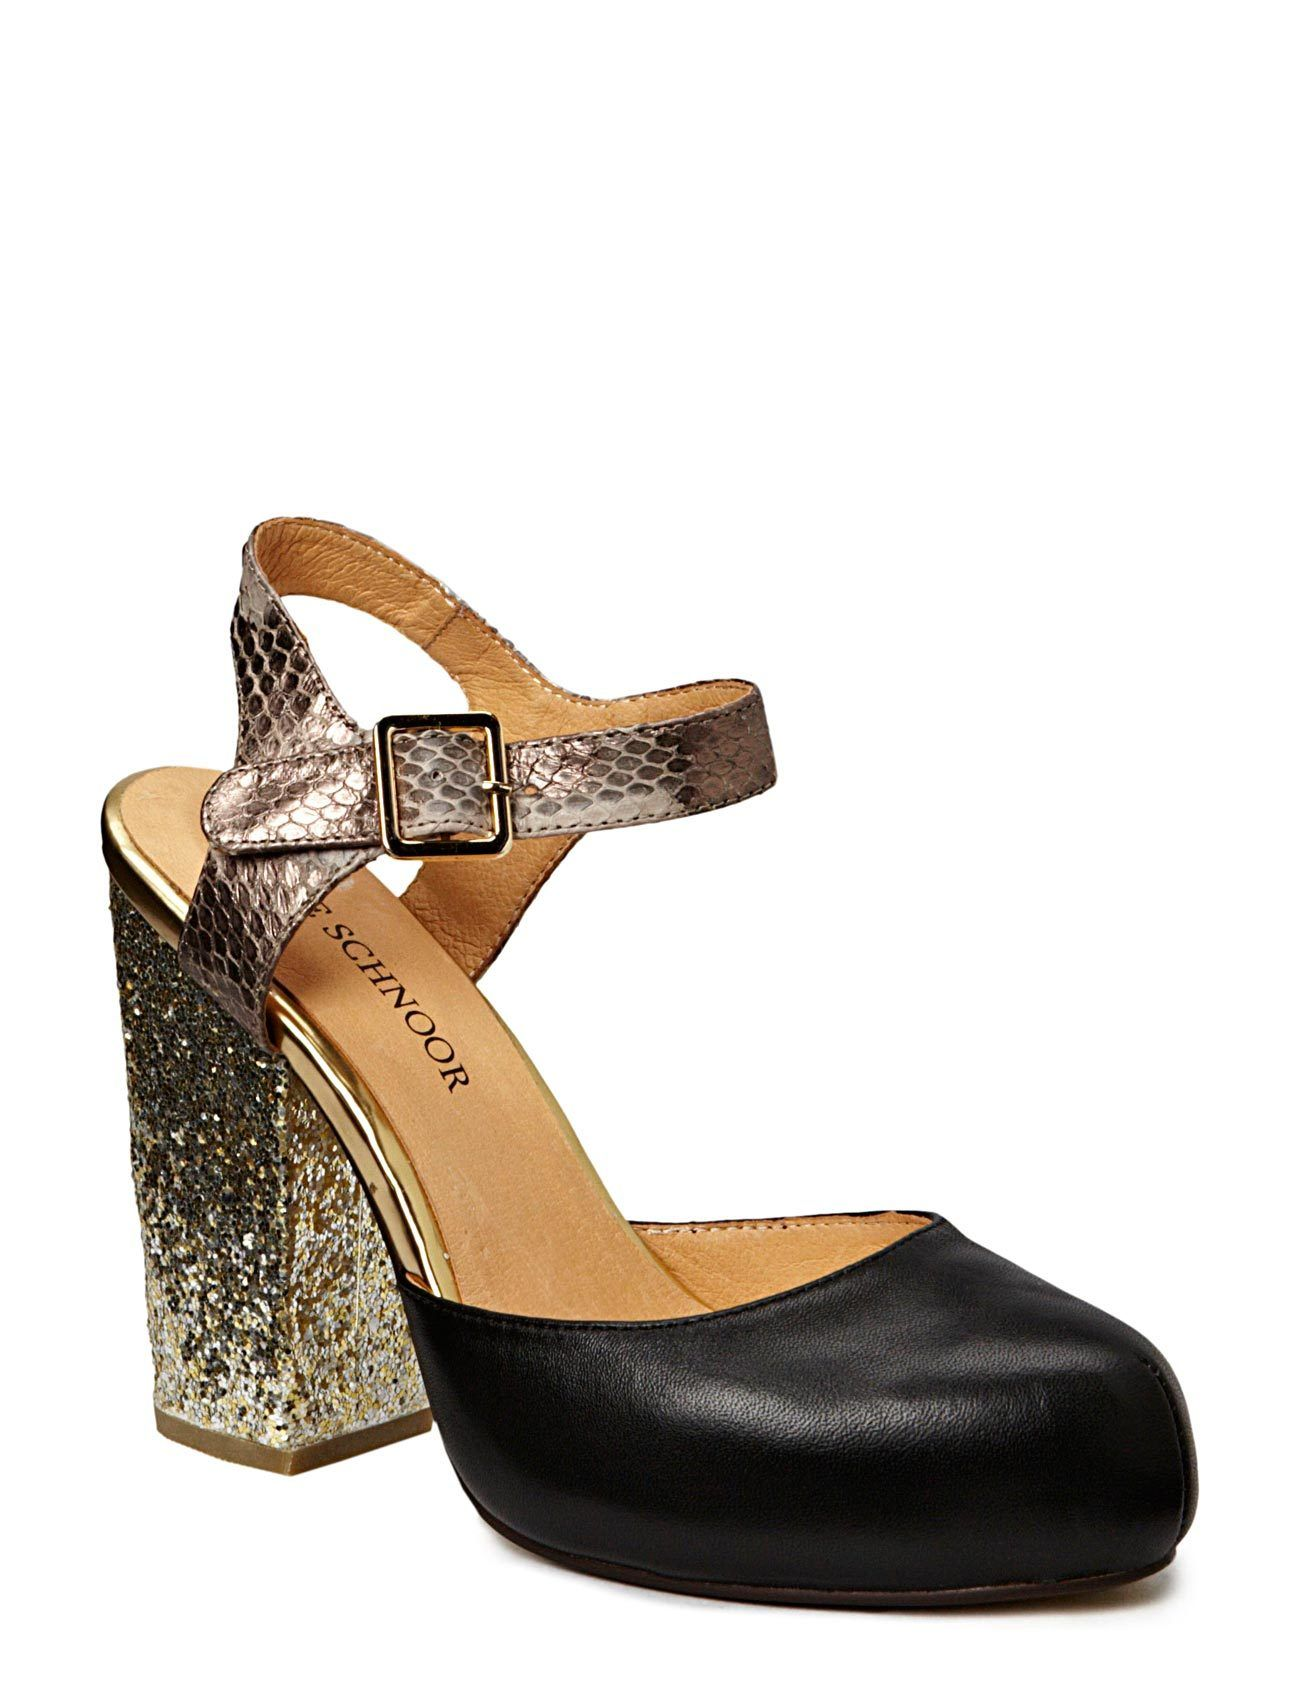 Sofie Schnoor - Leather/snake skin pump